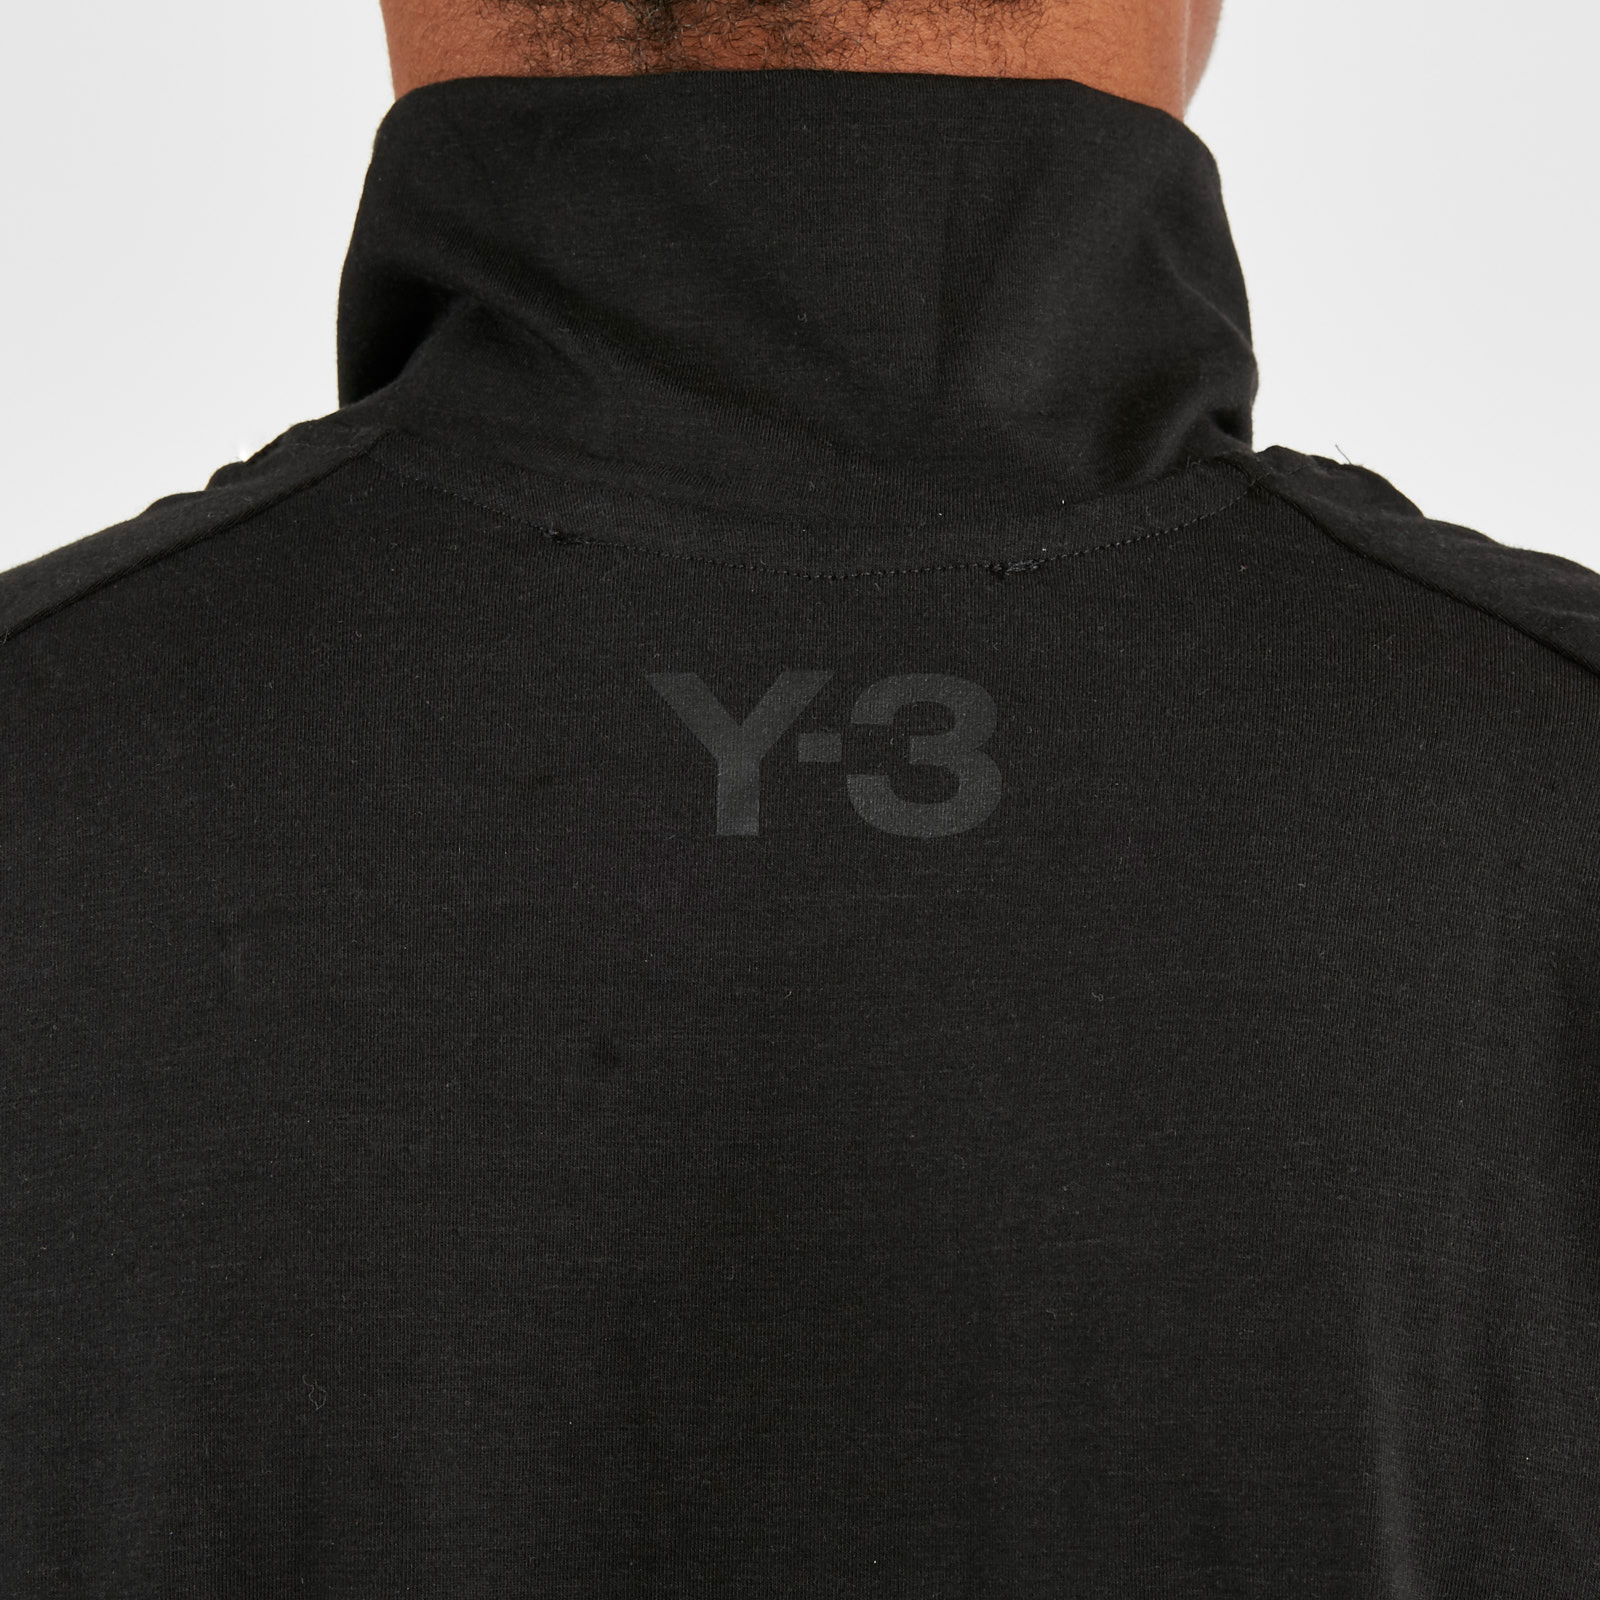 8ccc3c7e4ad9a adidas Y-3 3-Stripes High Neck LS Tee - Dp0482 - Sneakersnstuff ...